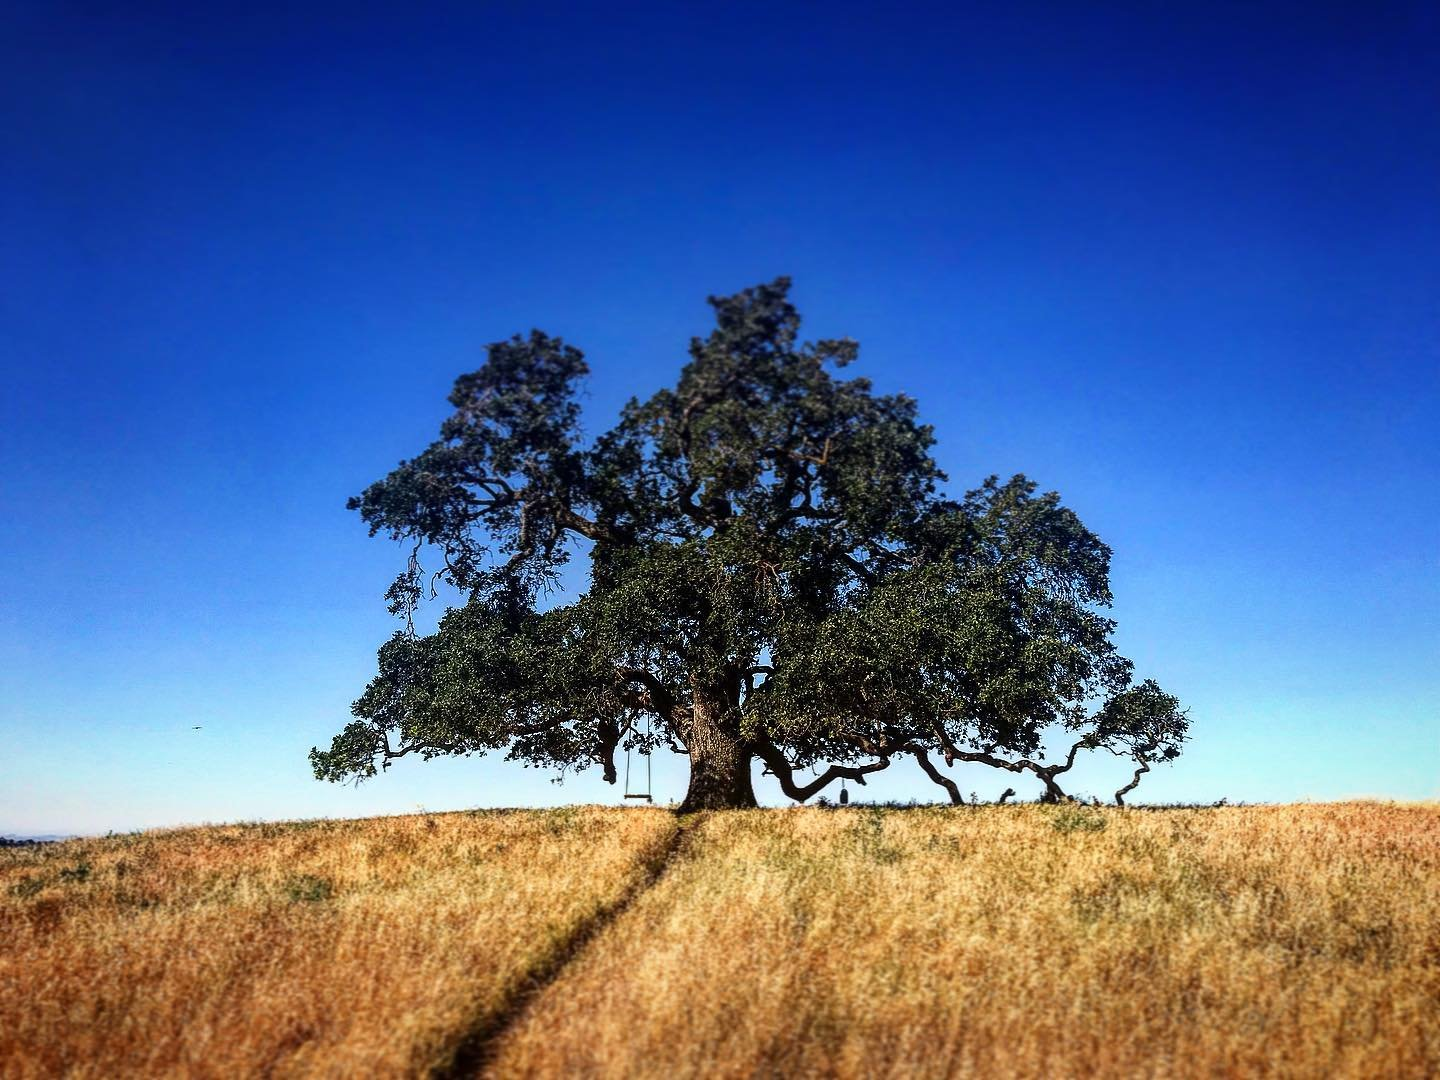 How to Find the Tree Swings in Vacaville, CA - Visit